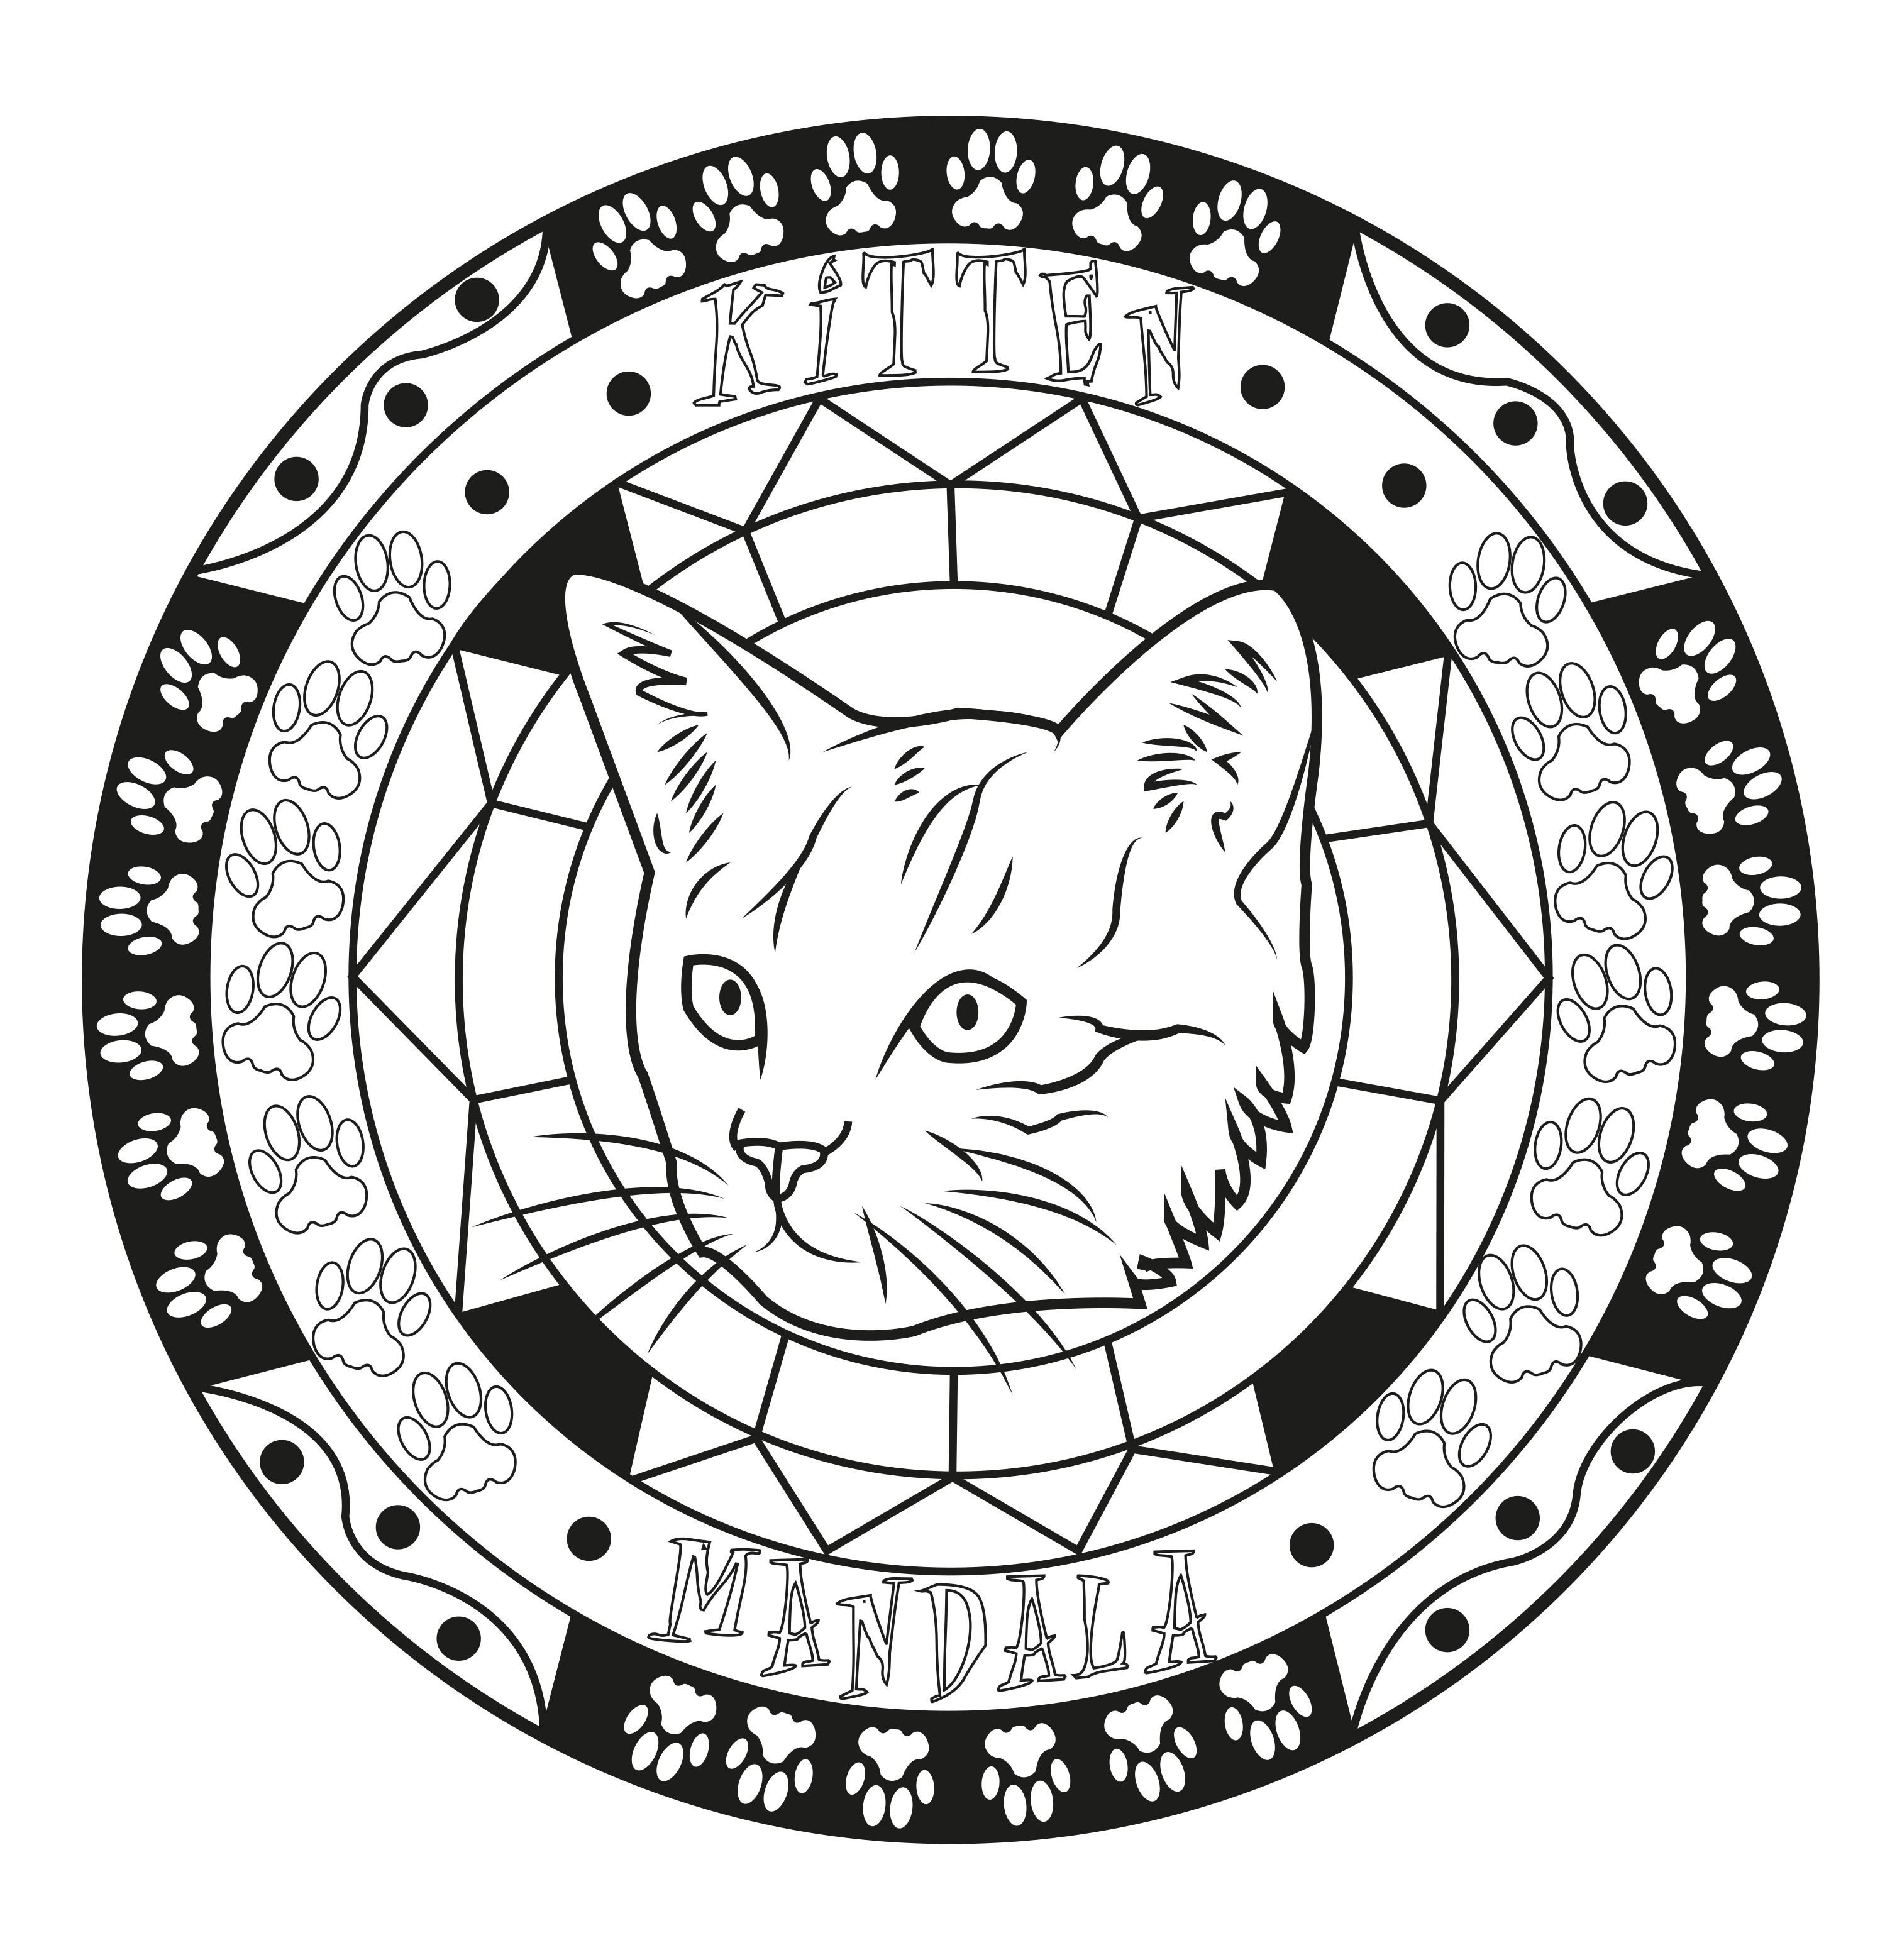 An Original Mandala Coloring Page With A Kitten Head